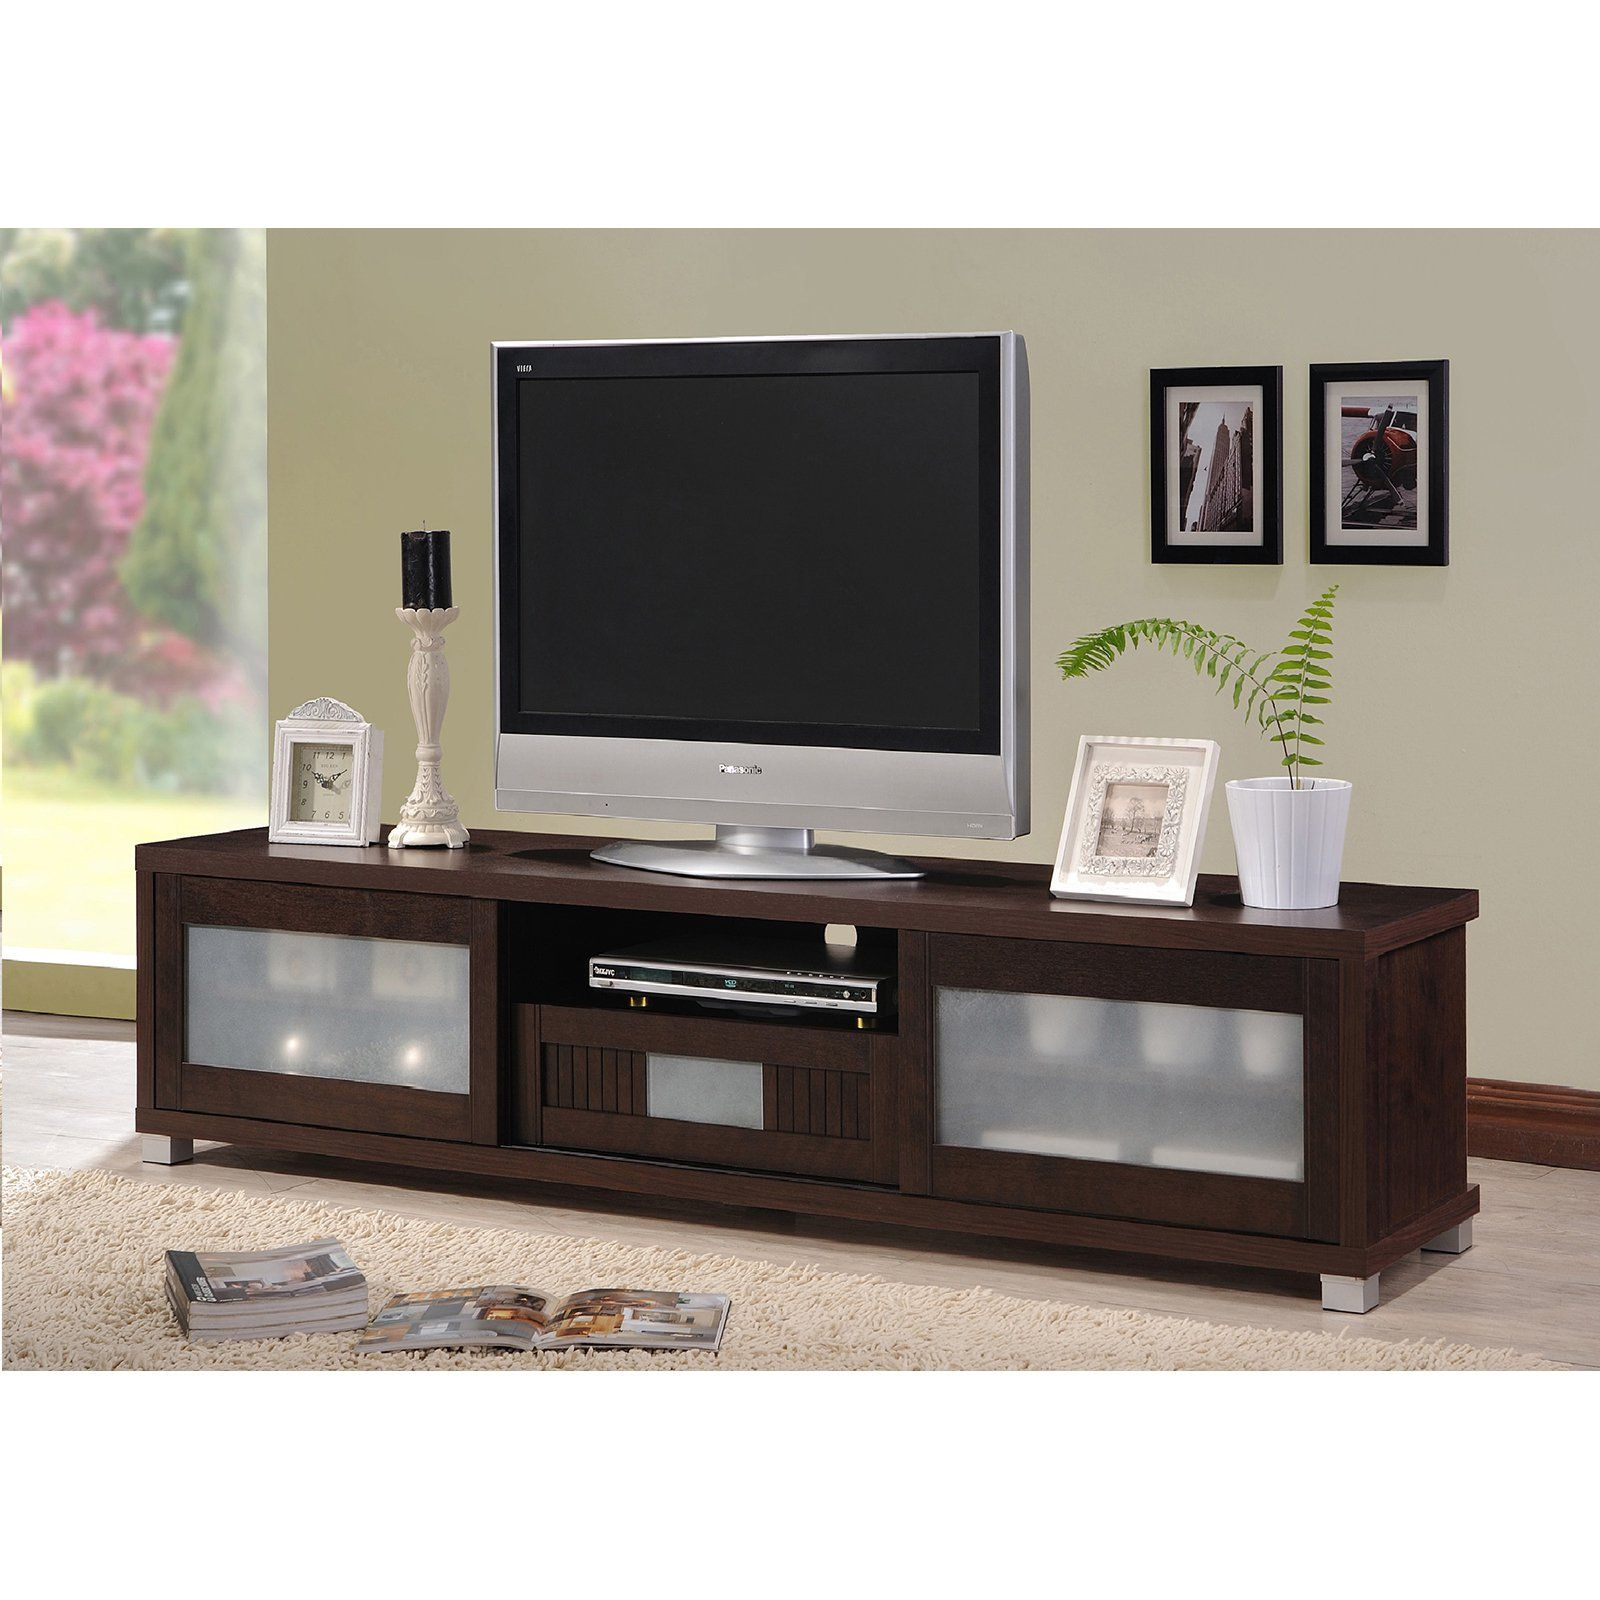 Baxton studio gerhardine in tv cabinet espresso tv